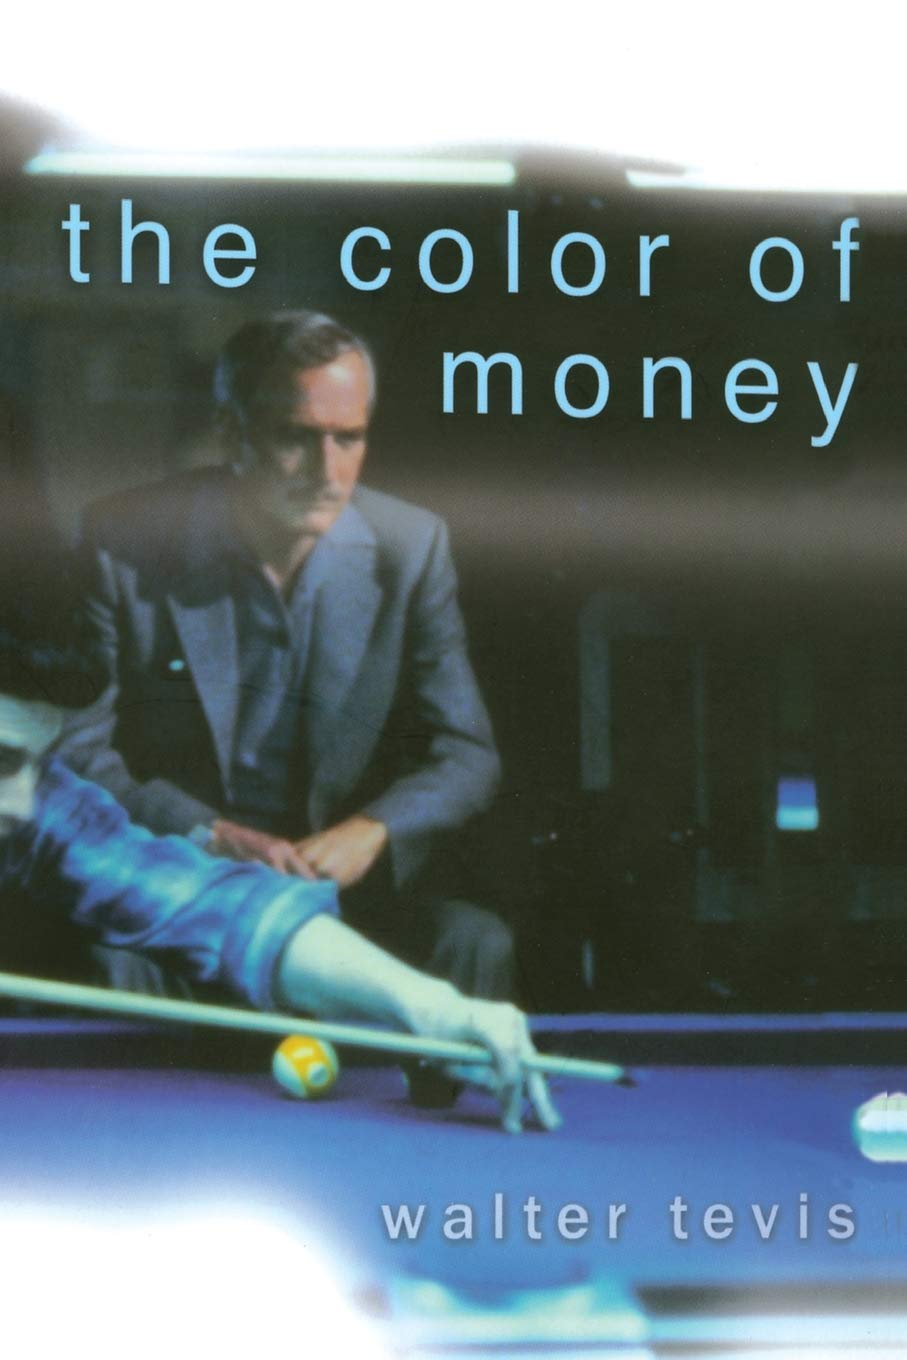 The Color of Money: Amazon.es: Tevis, Walter: Libros en idiomas extranjeros